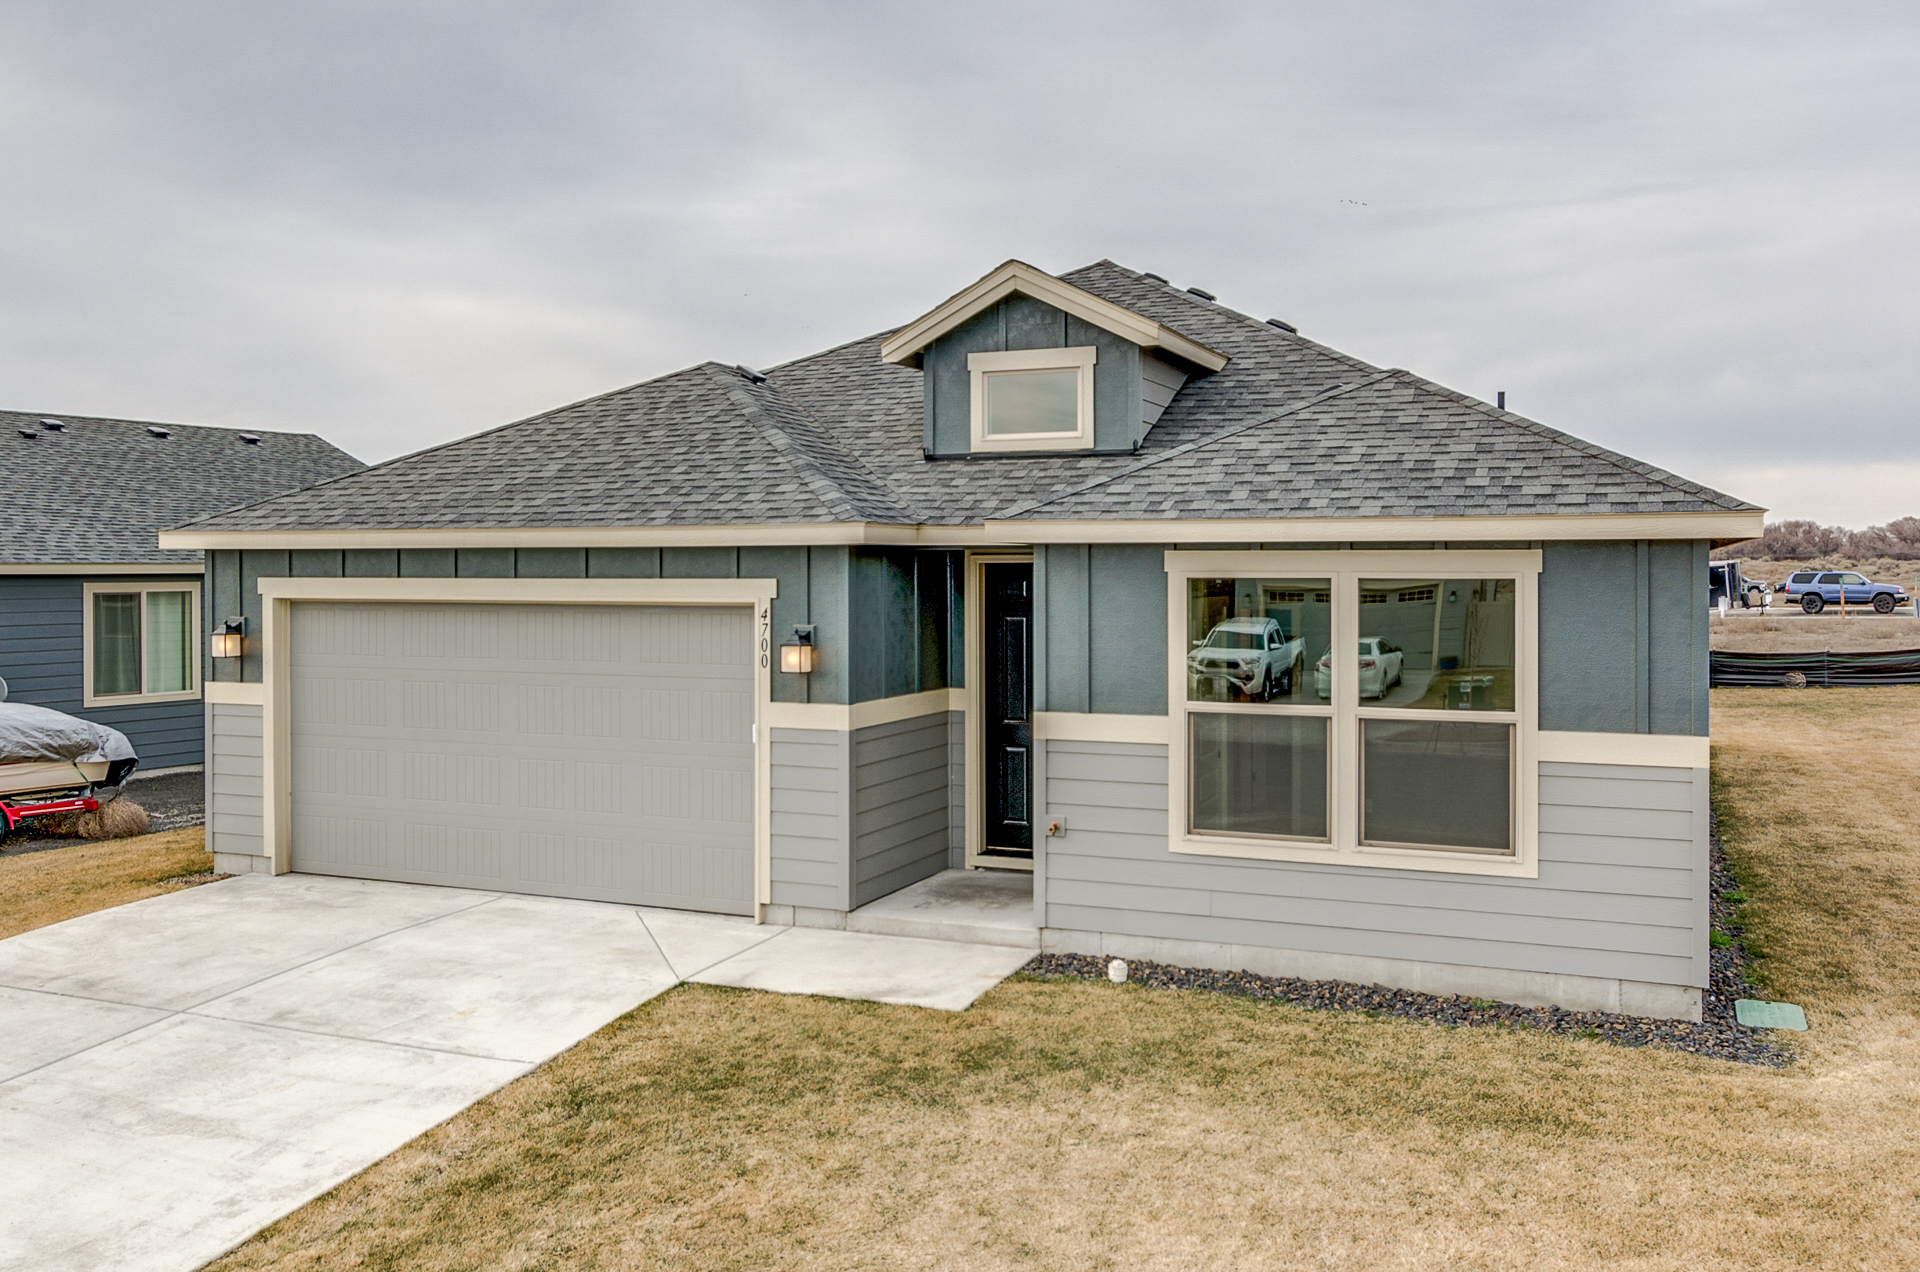 Sun Terrace Phase 4 in Moses Lake | Aho Construction